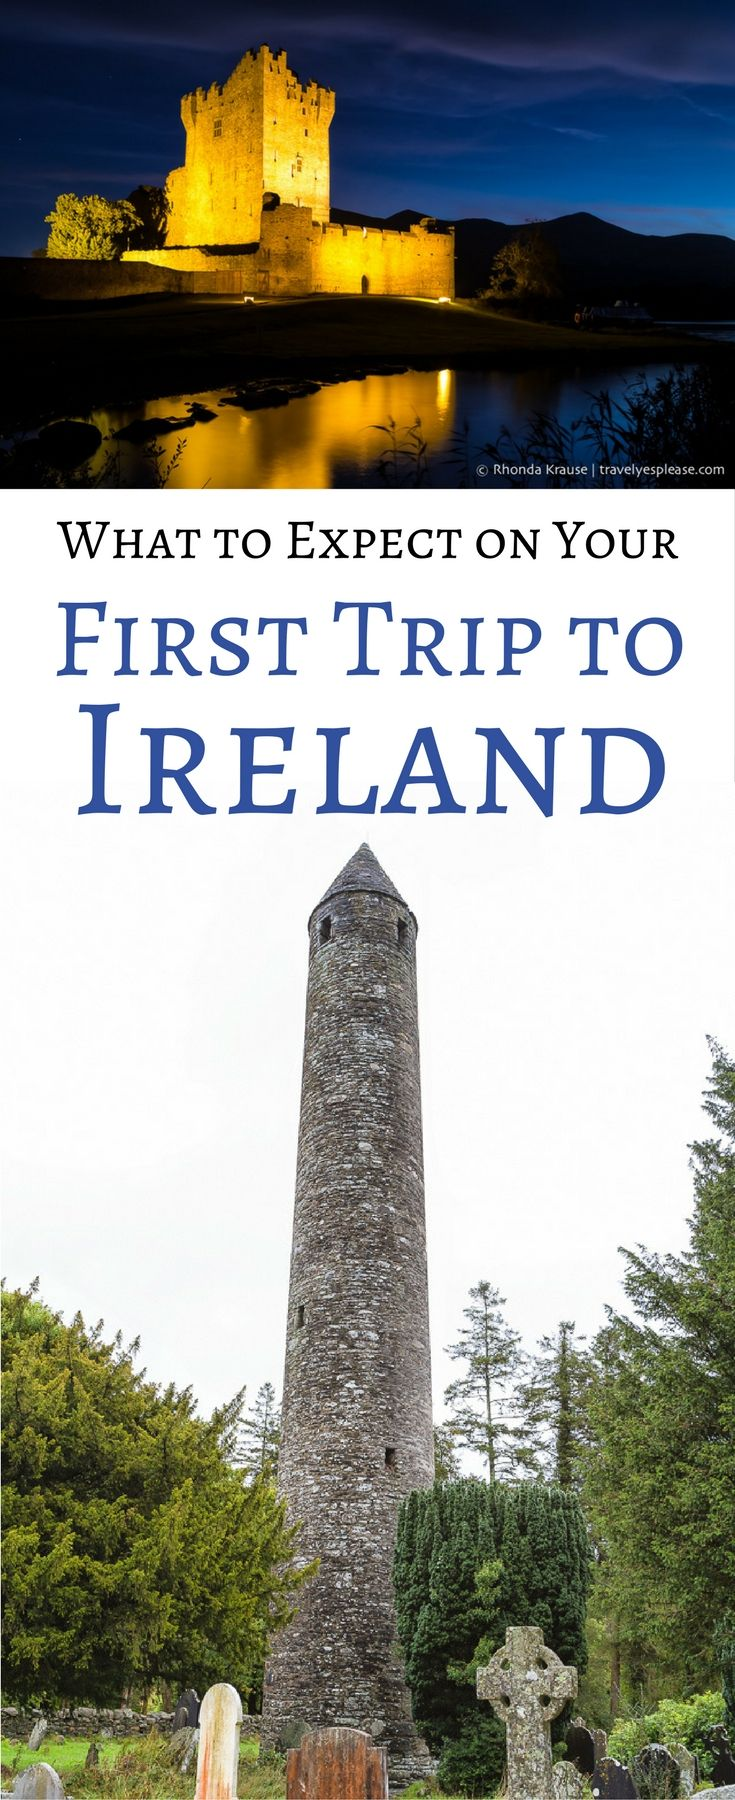 What to Expect on Your First Trip to Ireland: A First Time Visitor's Guide (Blog Post, travelyesplease.com) | #Ireland #Europe